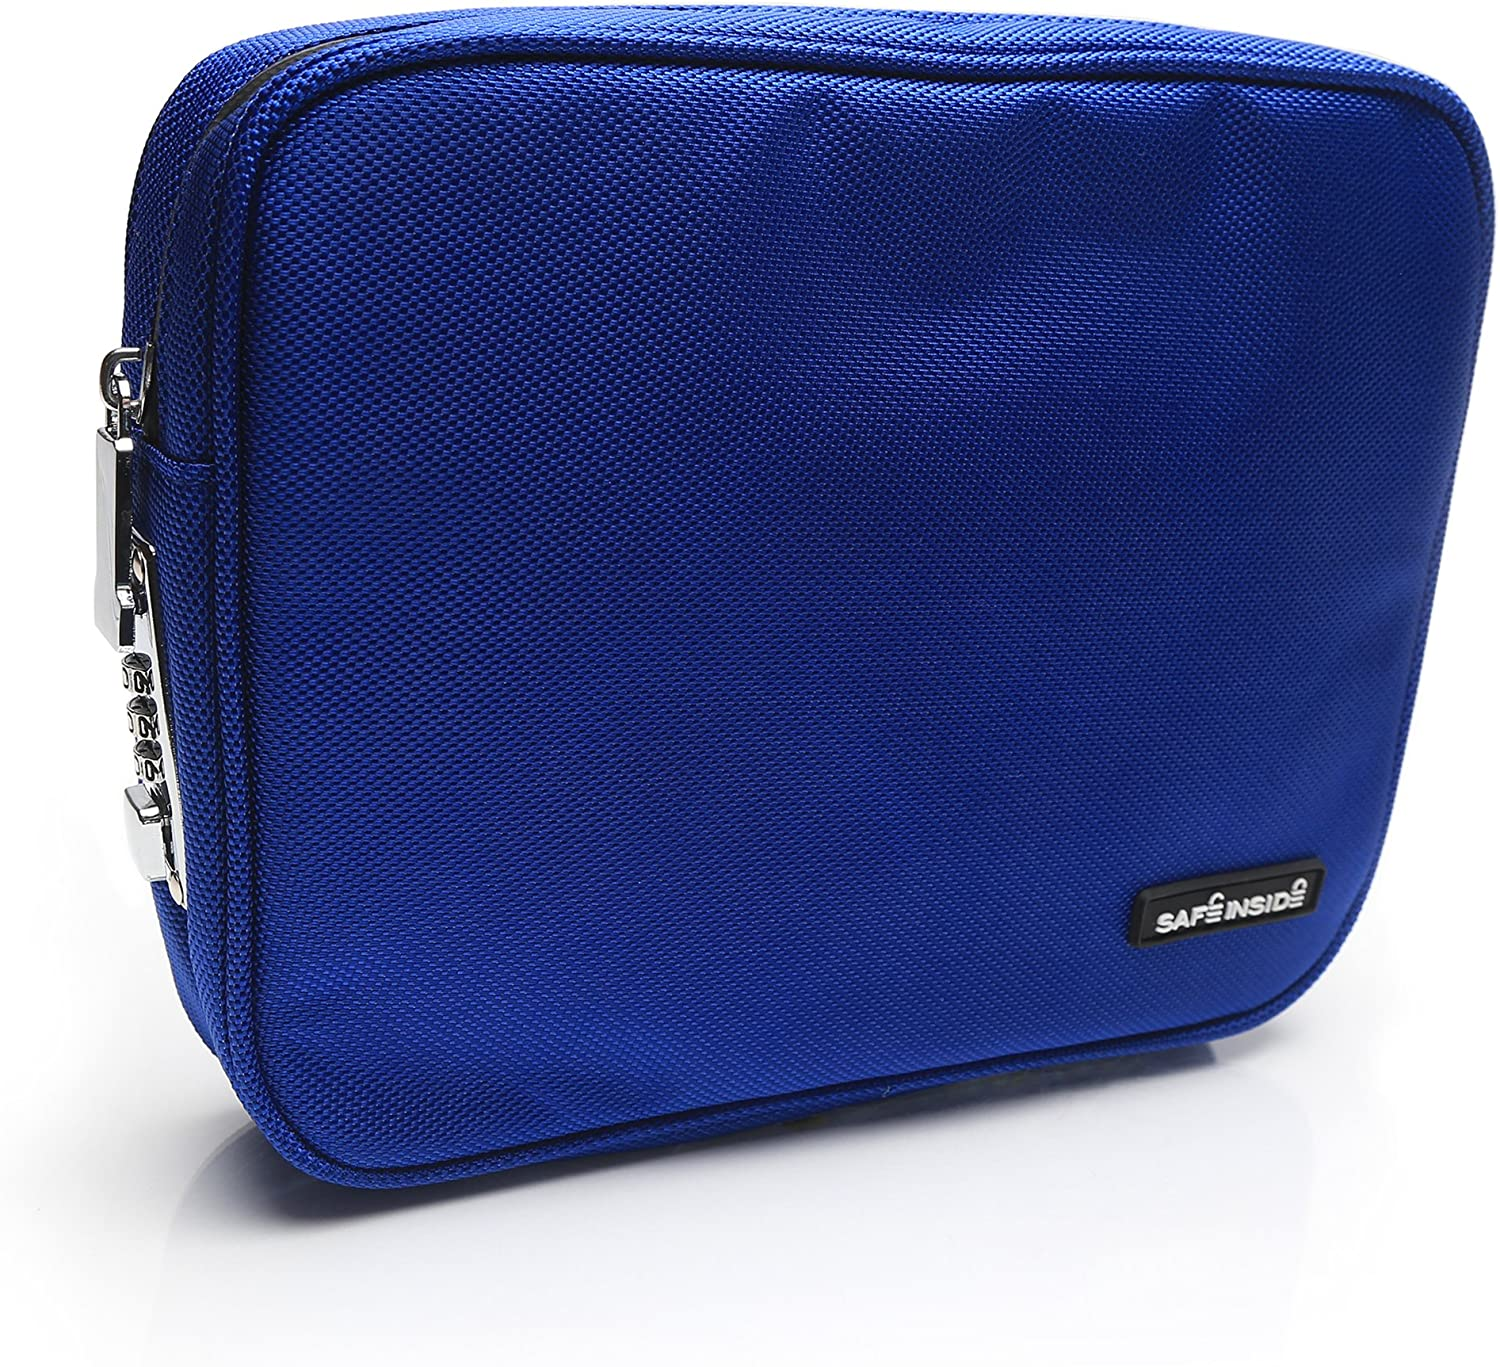 Safe Inside Large Locking Privacy Pouch with Steel Tether Cable, 7.5 Inches by 10.5 Inches, Blue